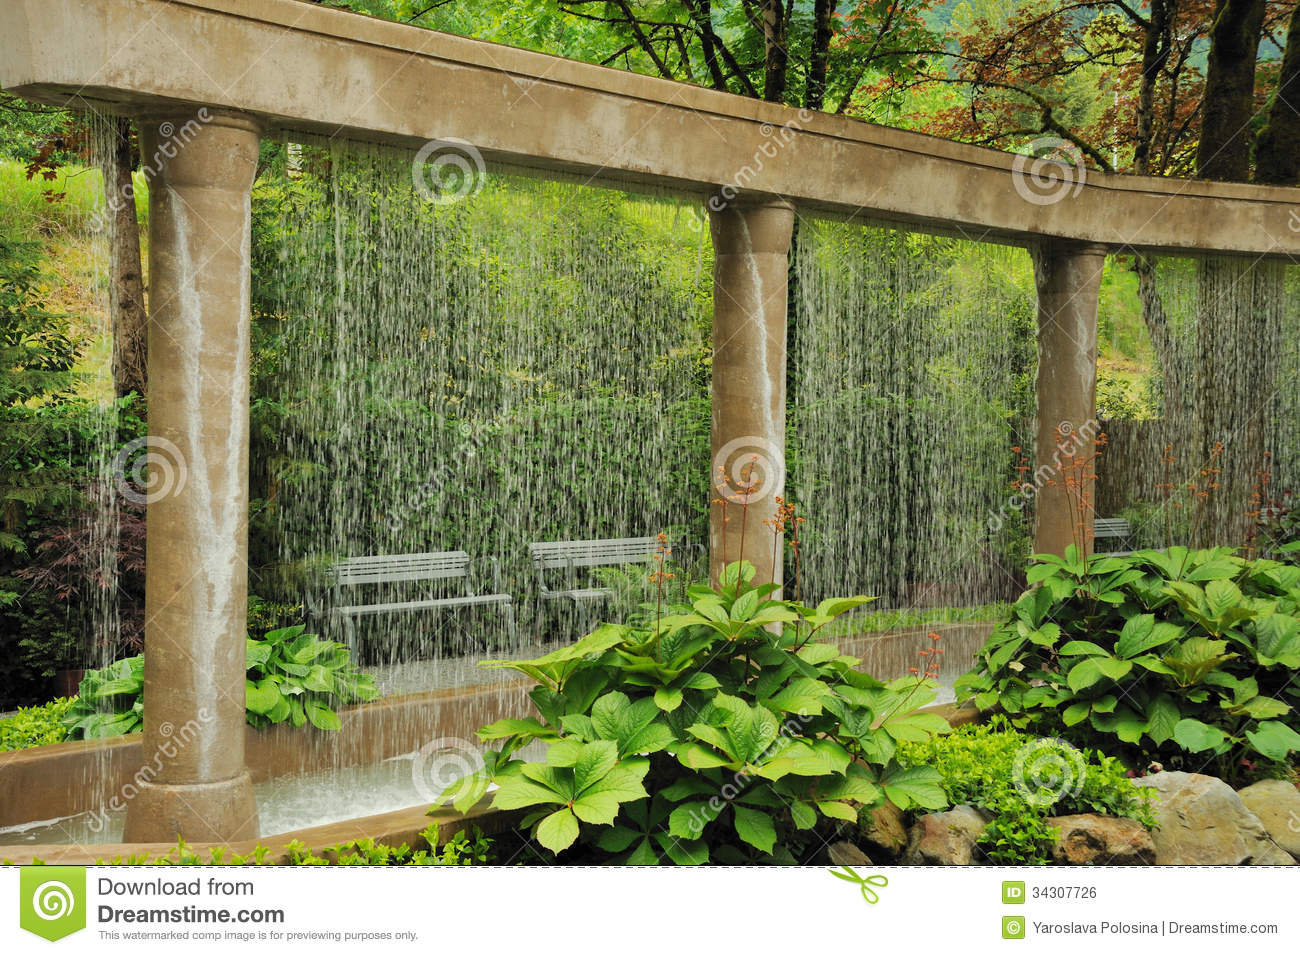 Decorative Water Wall In The Garden Stock Photo - Image of fountain ...